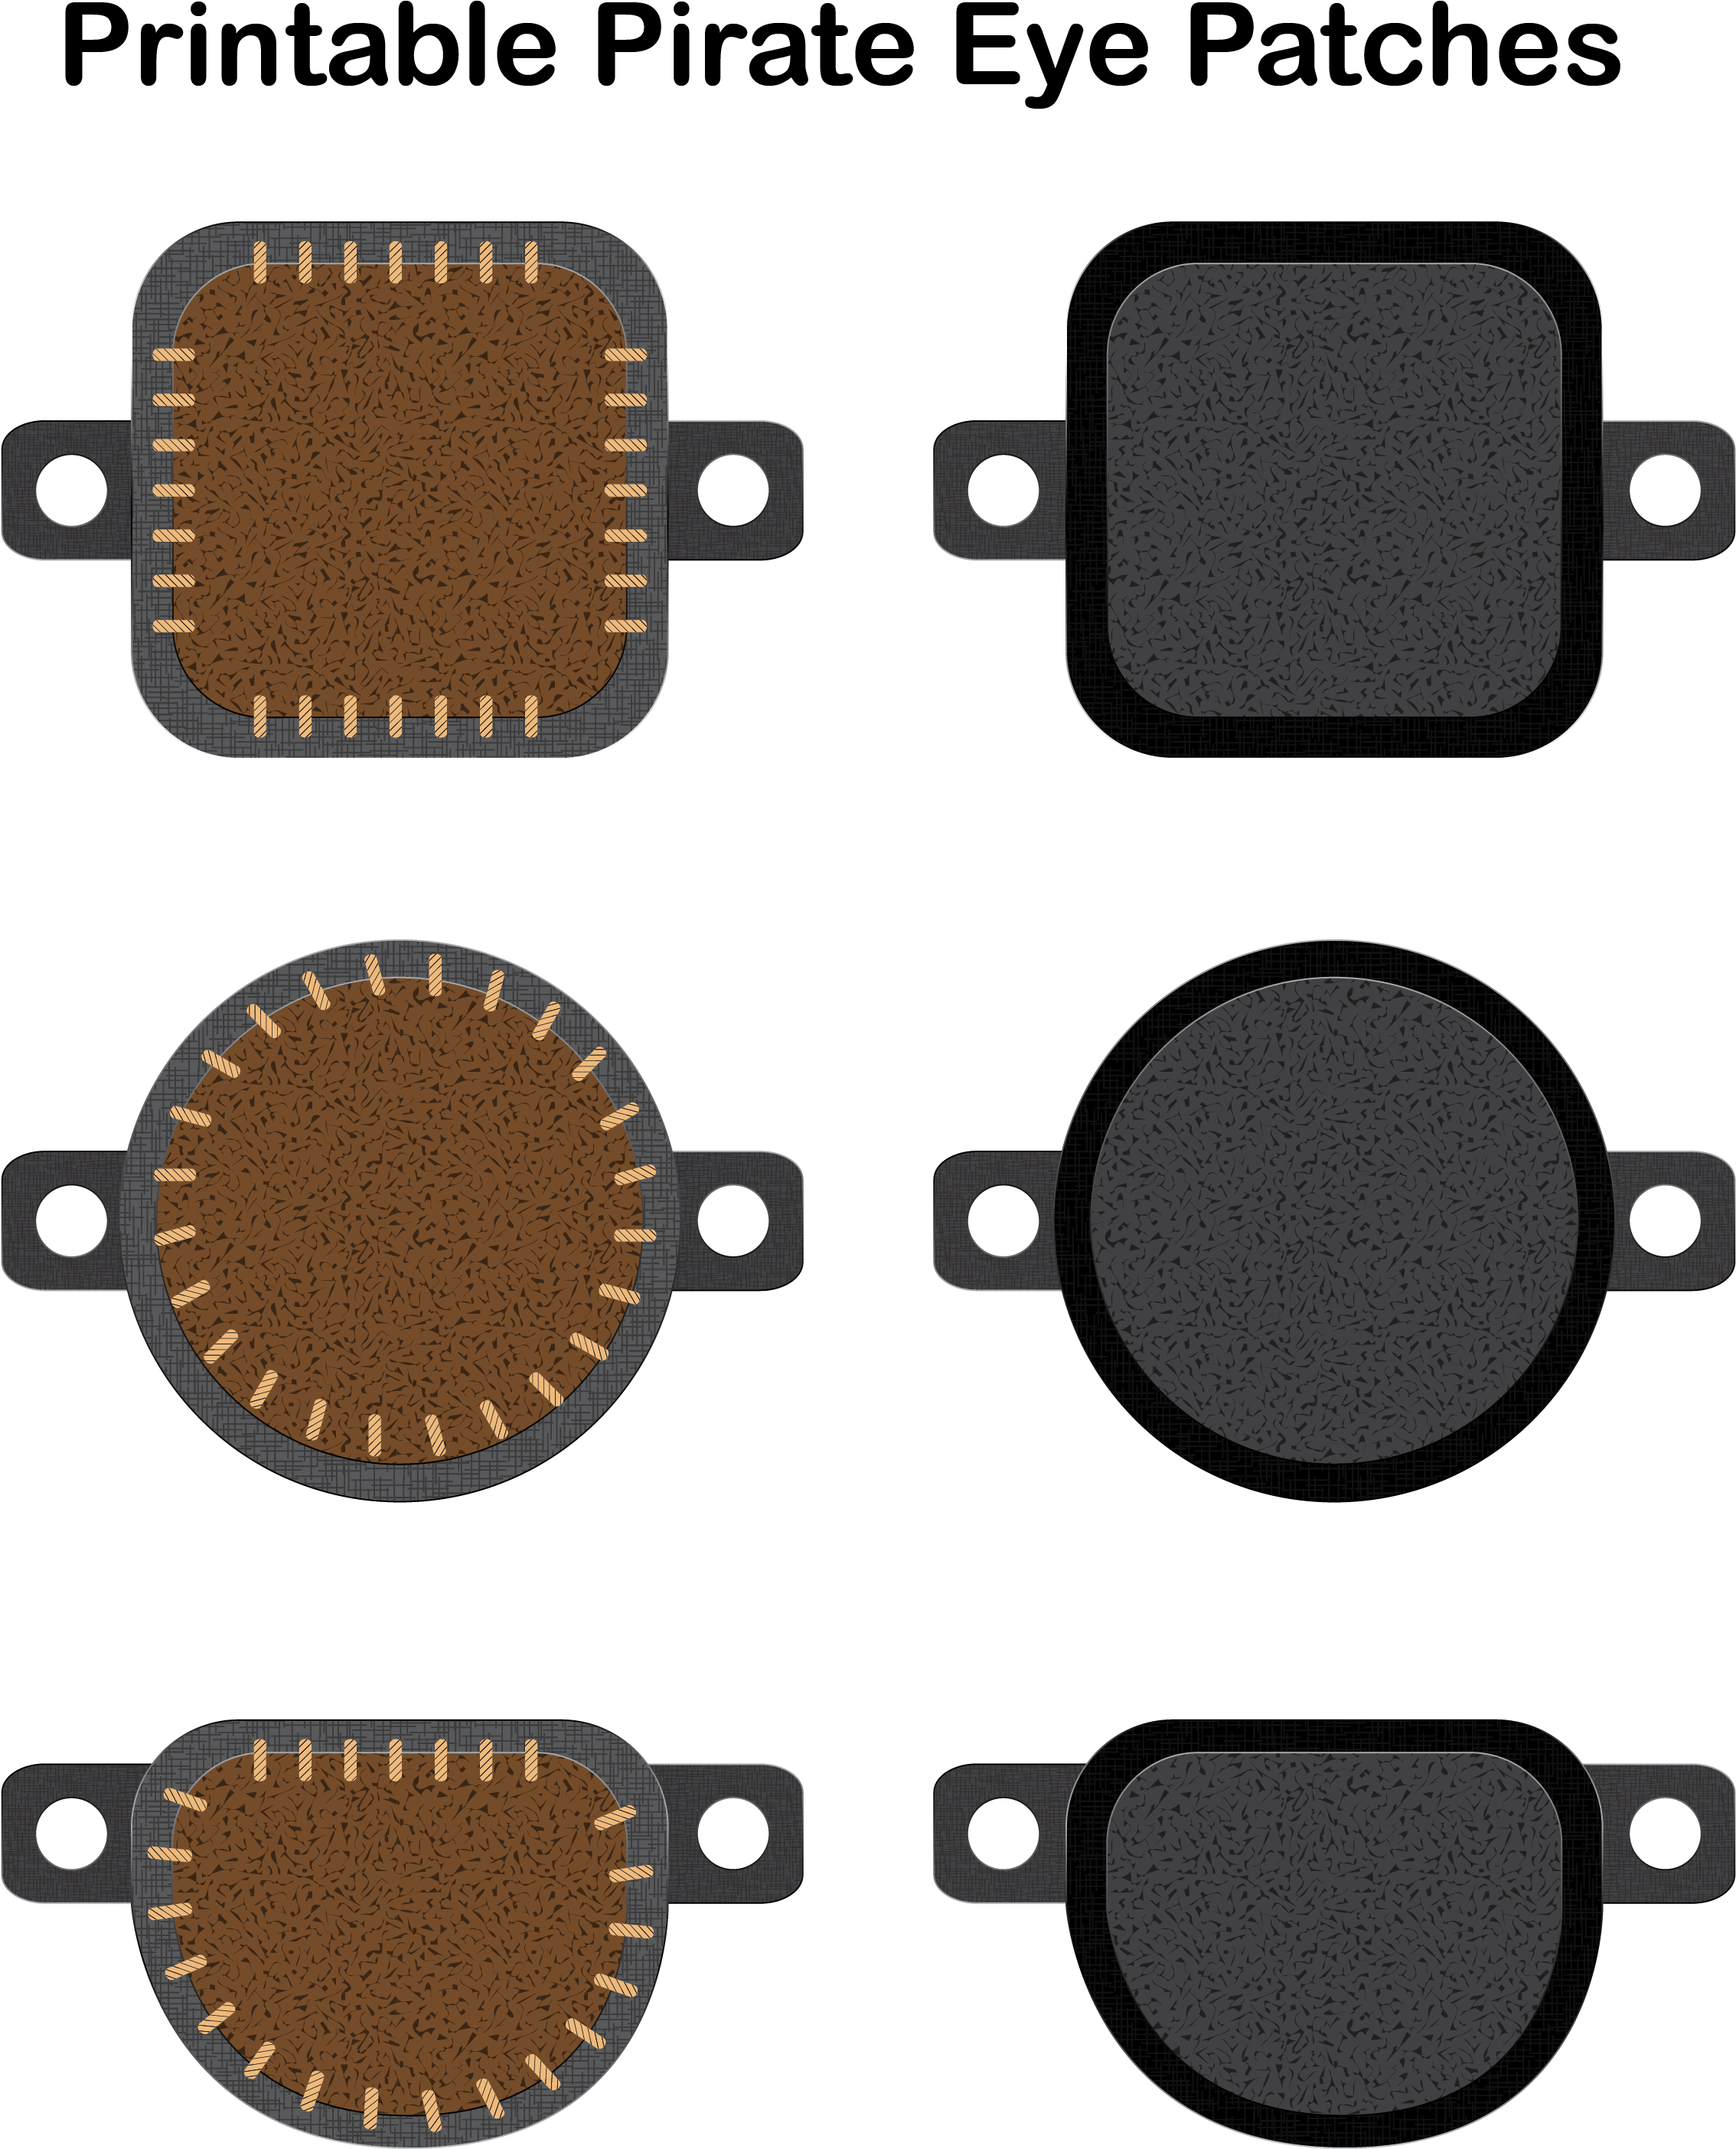 Eyepatch transparent pirate eye. Download hd patch for